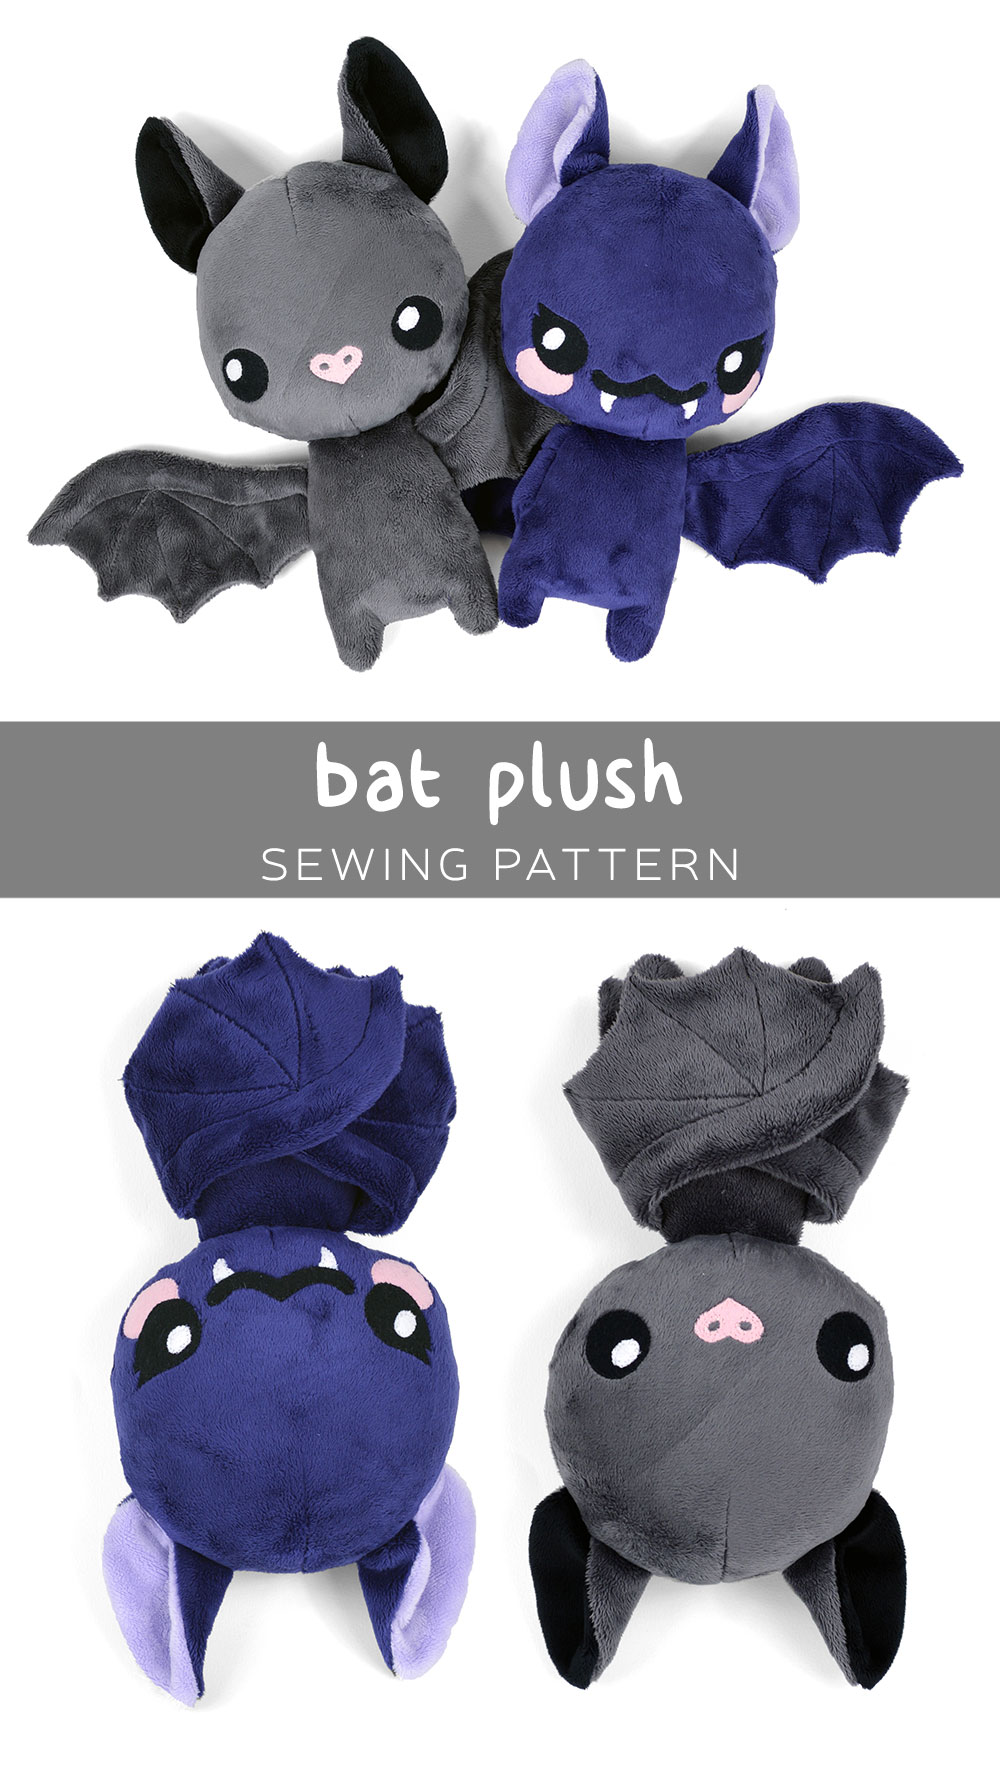 Prj087  sc 1 st  Choly Knight & Free Pattern Friday! Bat Plush | Choly Knight